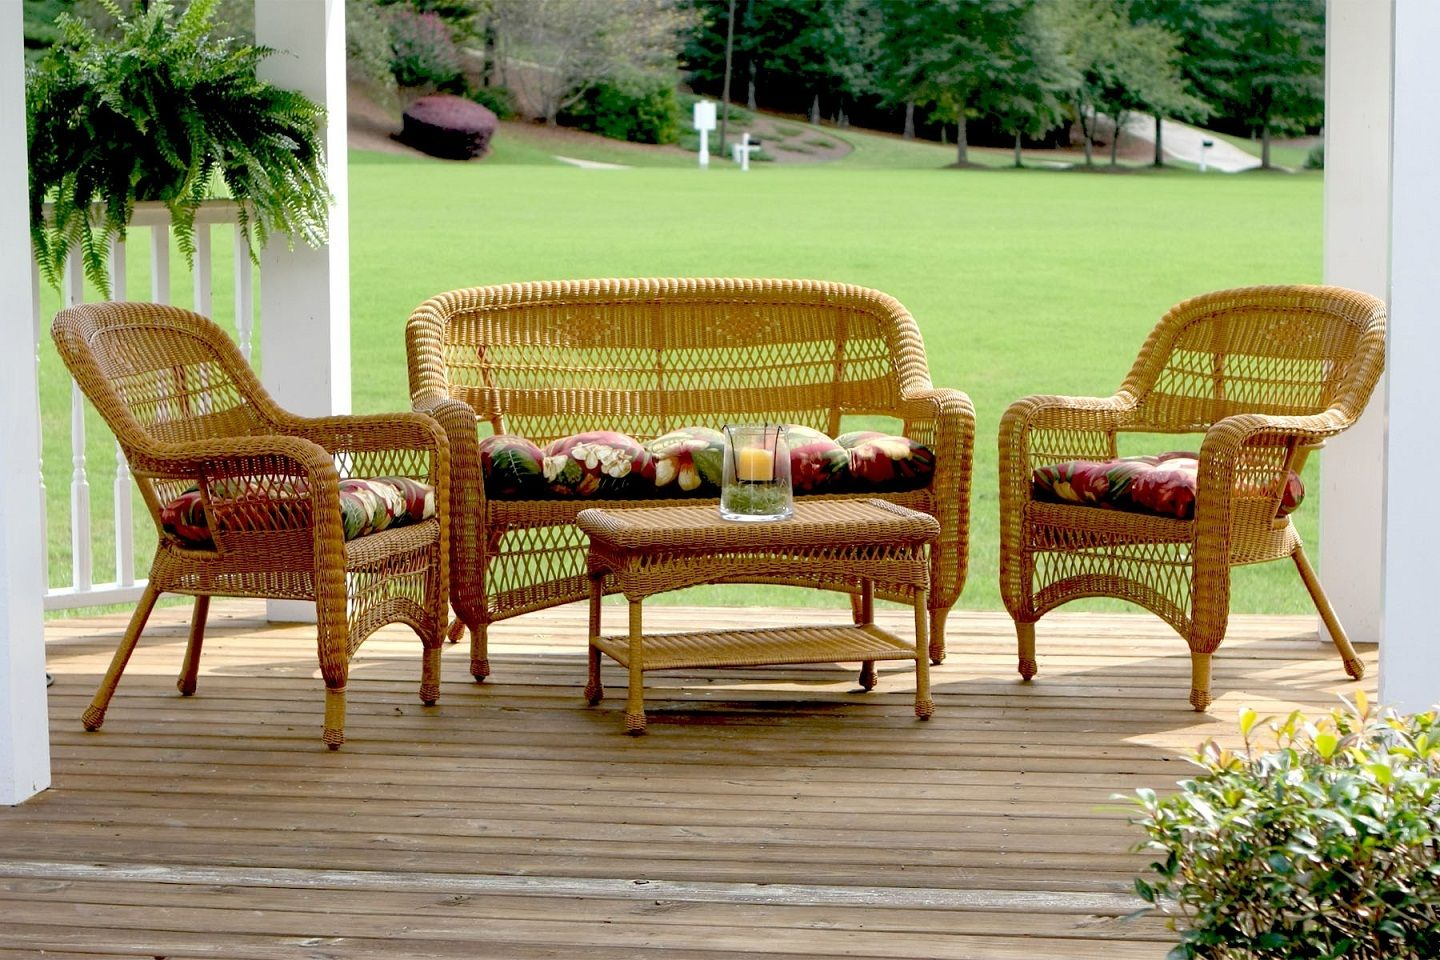 lowe's patio furniture sale | patio furniture lowes | home - outside